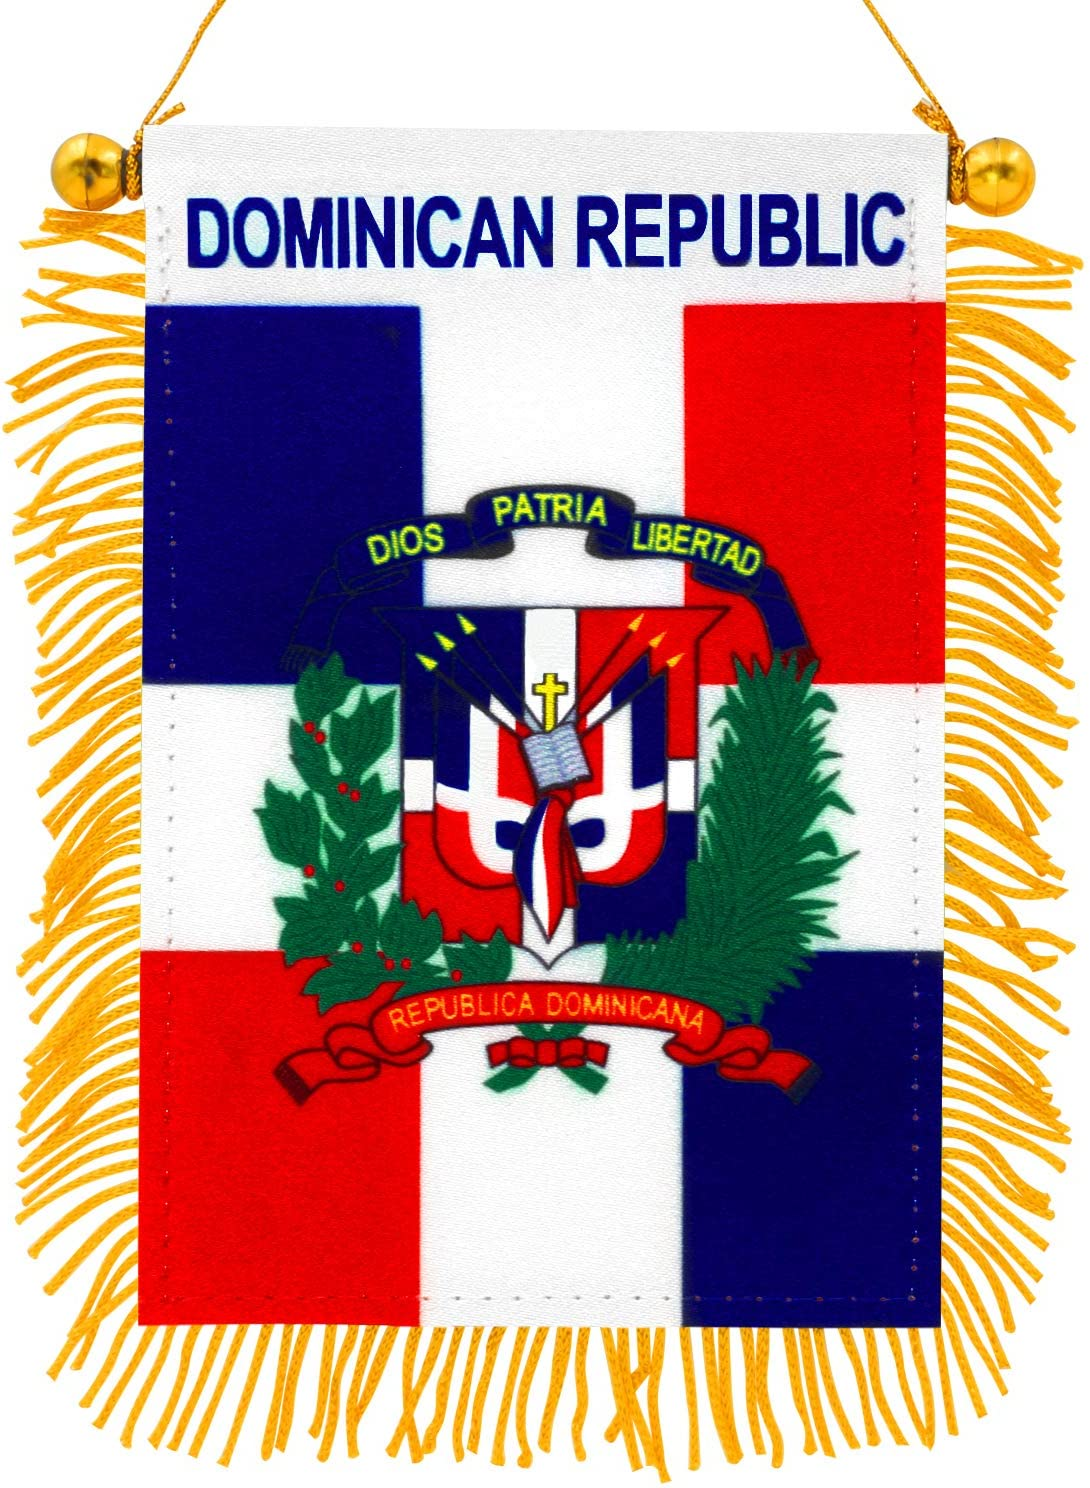 "Anley 4"" X 6"" The Dominican Republic Fringy Window Hanging Flag - Mini Flag Banner & Rearview Mirror Décor - Fringed & Double Sided - Dominican Rearview Flag with Suction Cup"